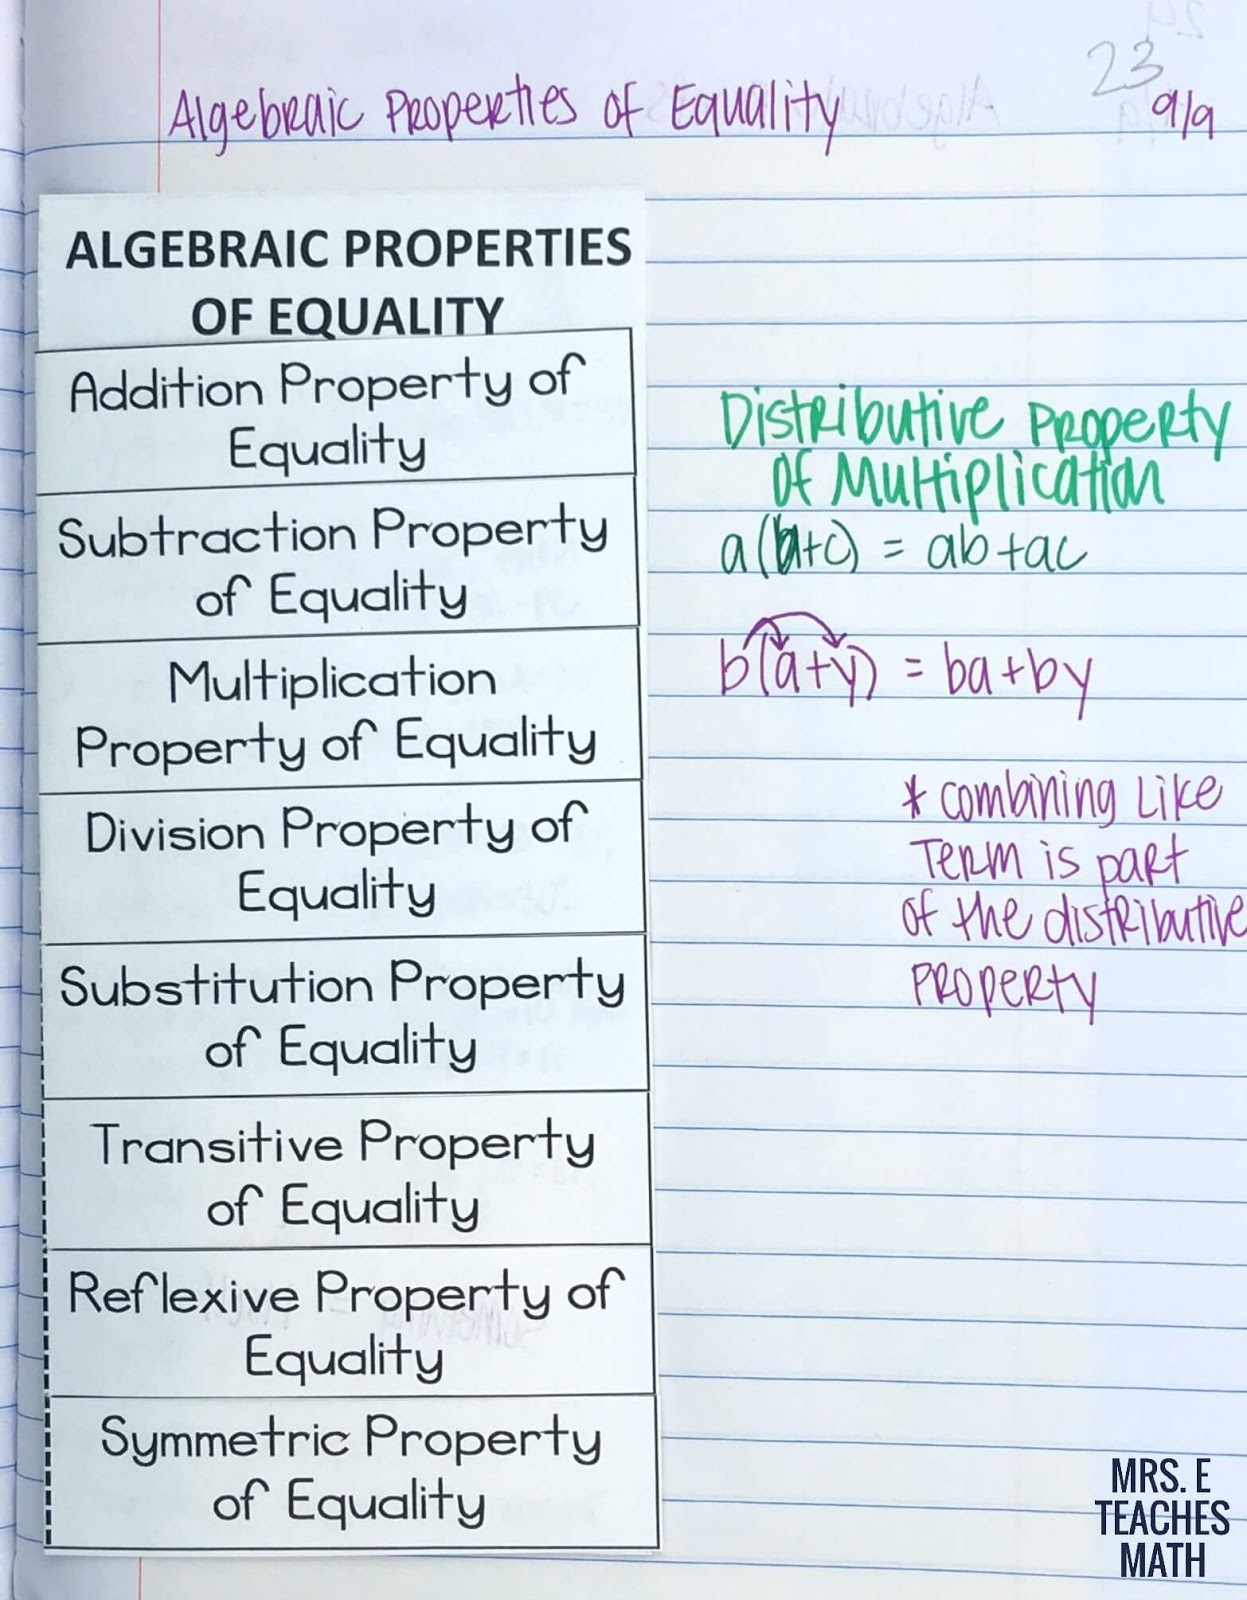 worksheet Algebraic Proofs Worksheet With Answers beginning proofs inb pages mrs e teaches math algebraic properties of equality foldable for geometry interactive notebooks